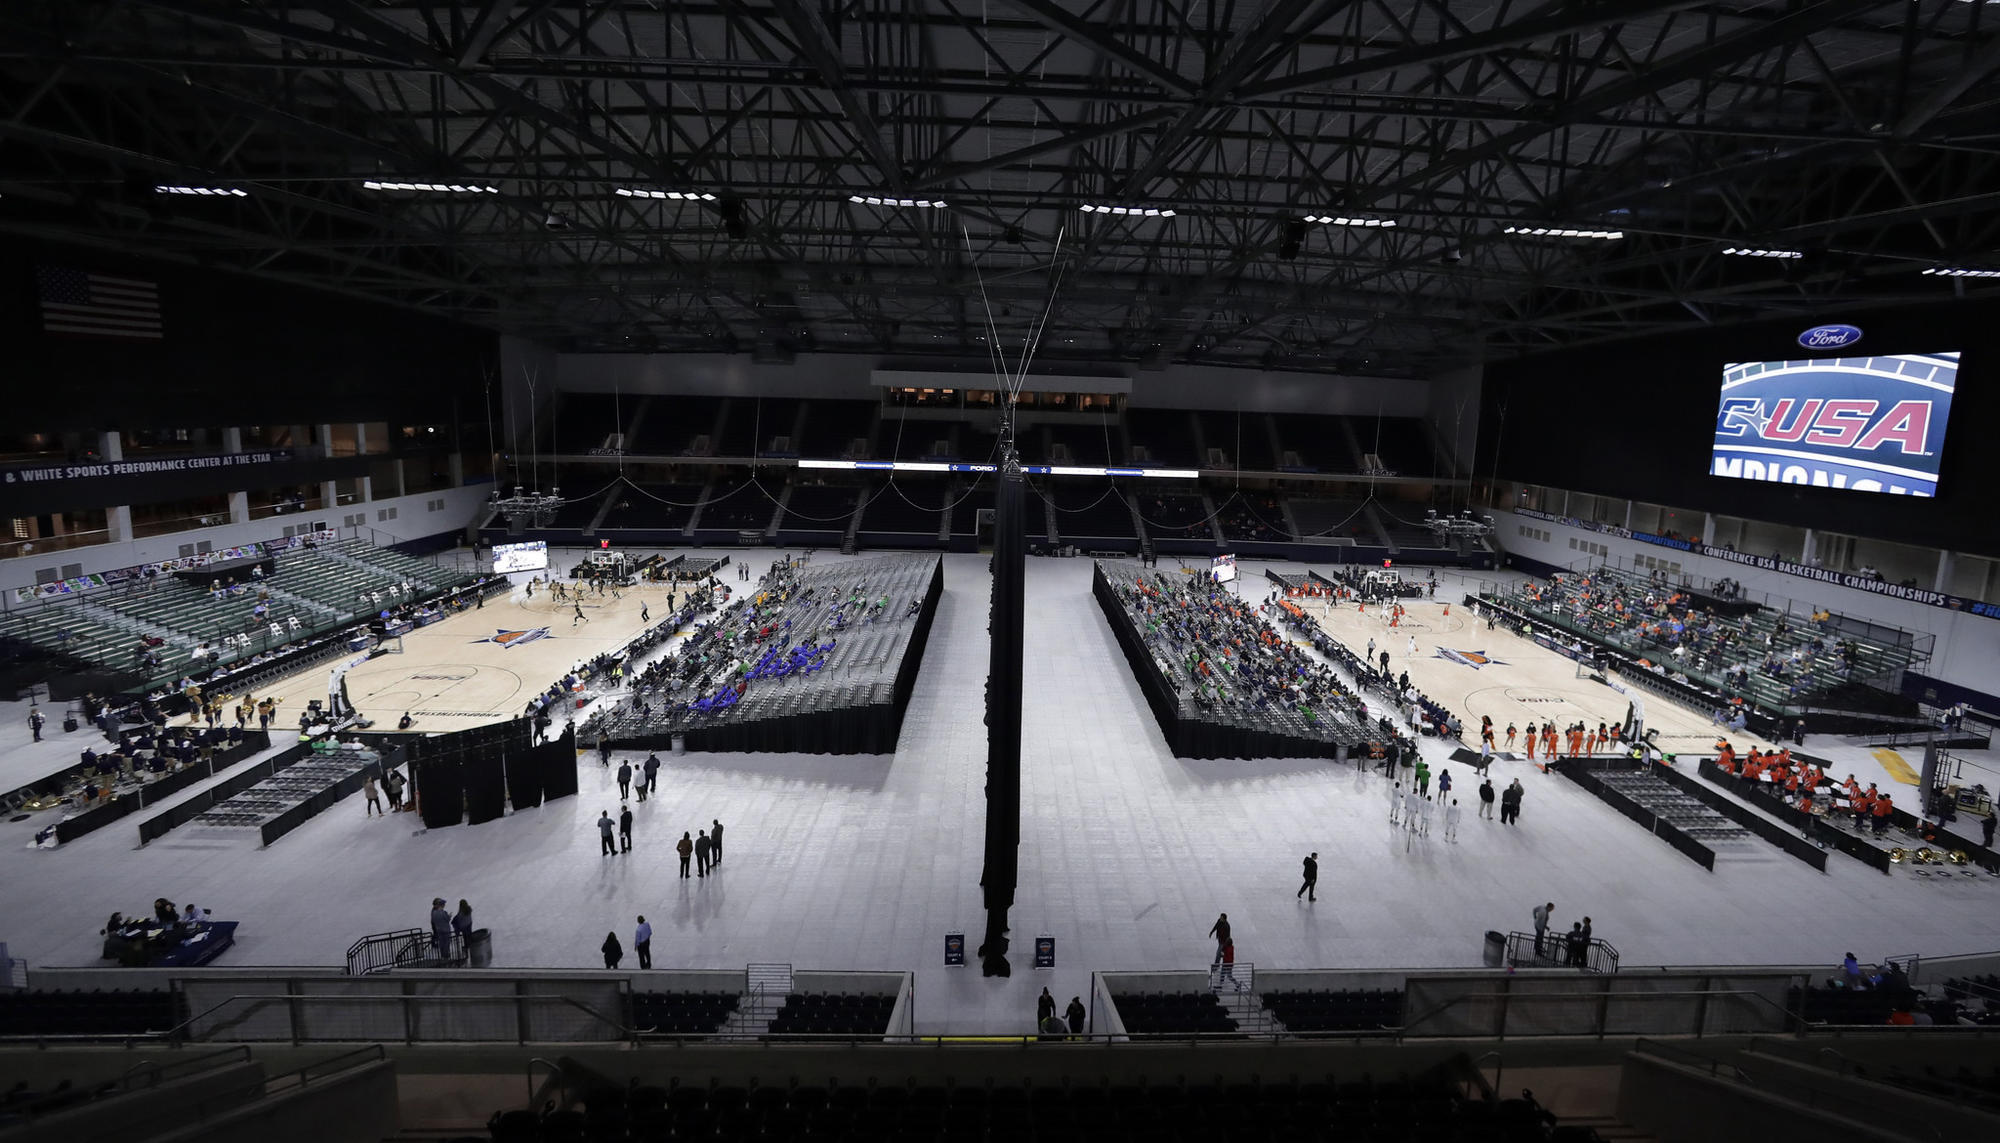 Conference usa tournament games on 2 courts simultaneously chicago tribune